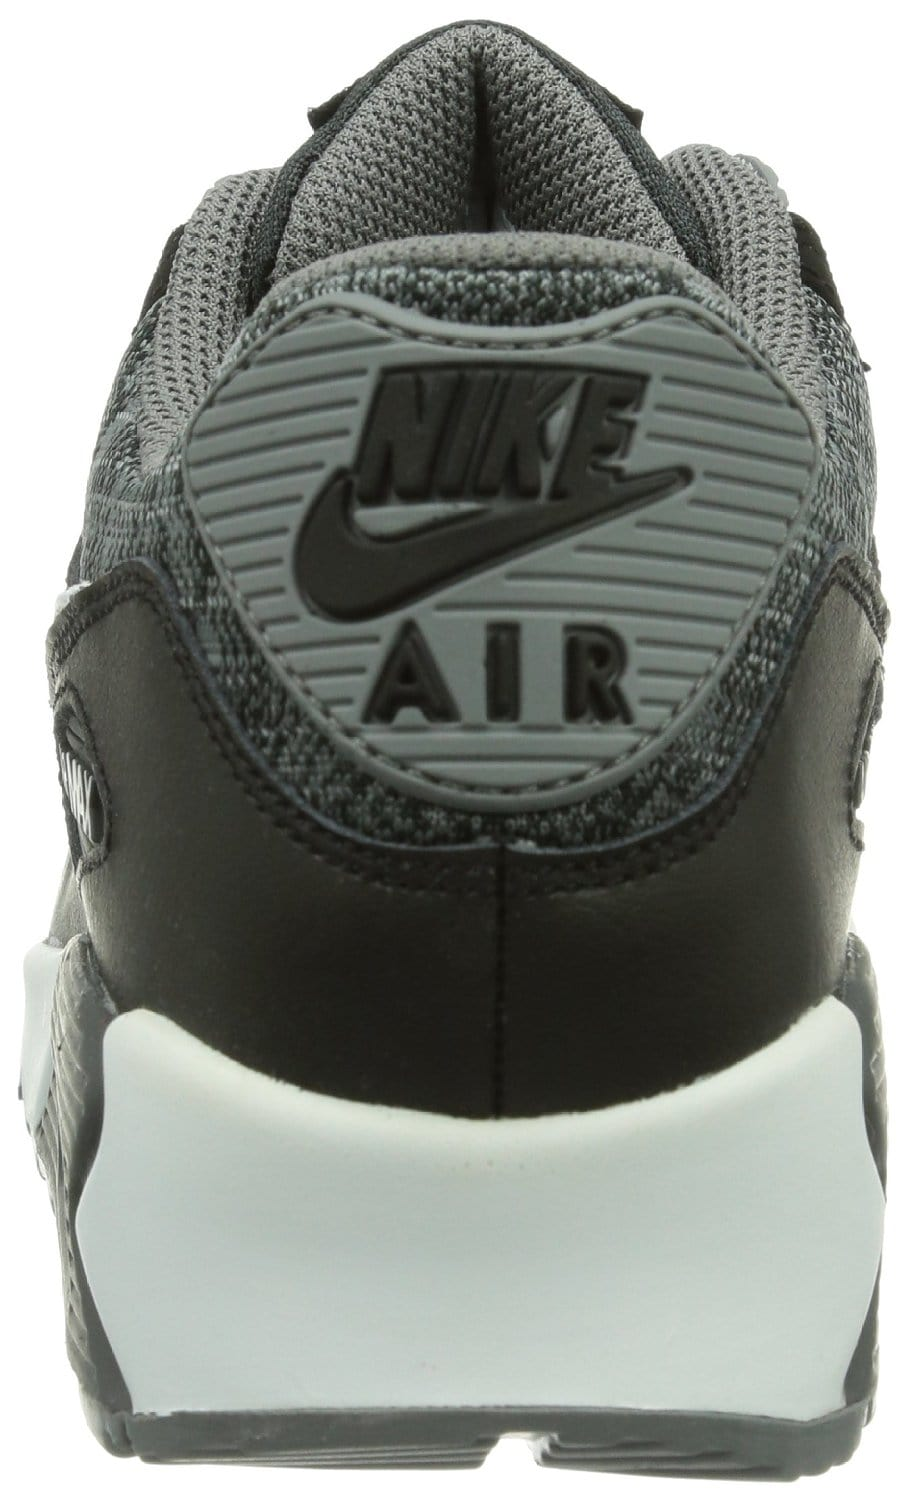 Nike Air Max 90 (GS) Anthracite-White-Black-Cool Grey - Kick Game